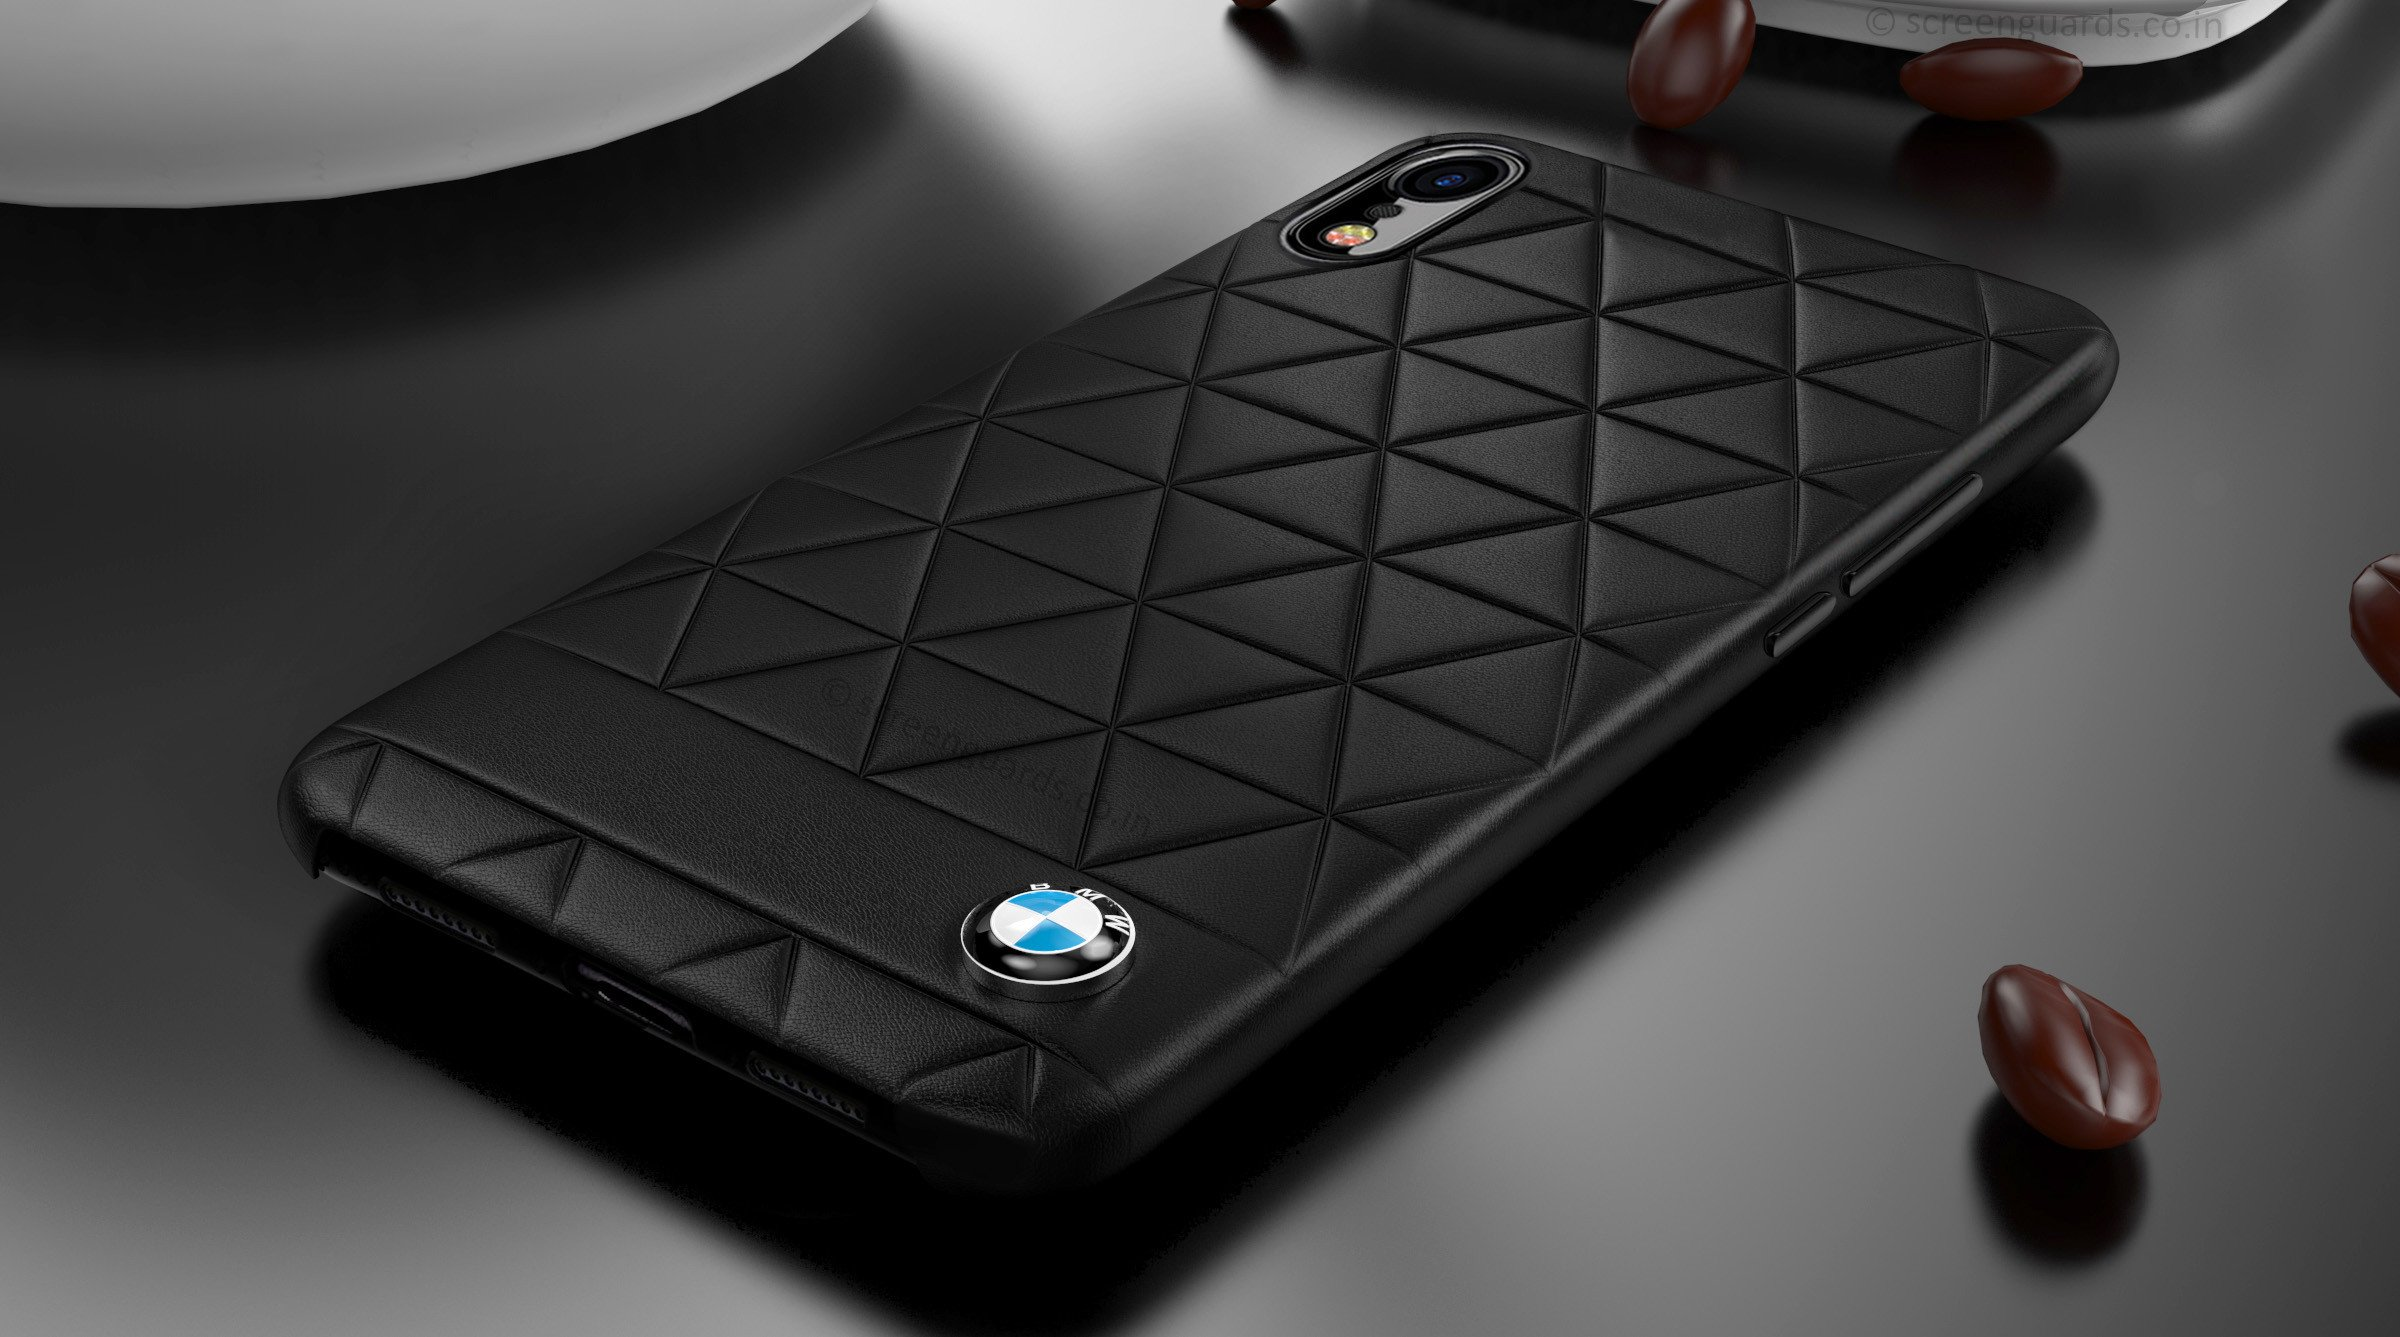 bmw apple iphone xr official superstar zdrive leather case limited edition back cover iphone. Black Bedroom Furniture Sets. Home Design Ideas